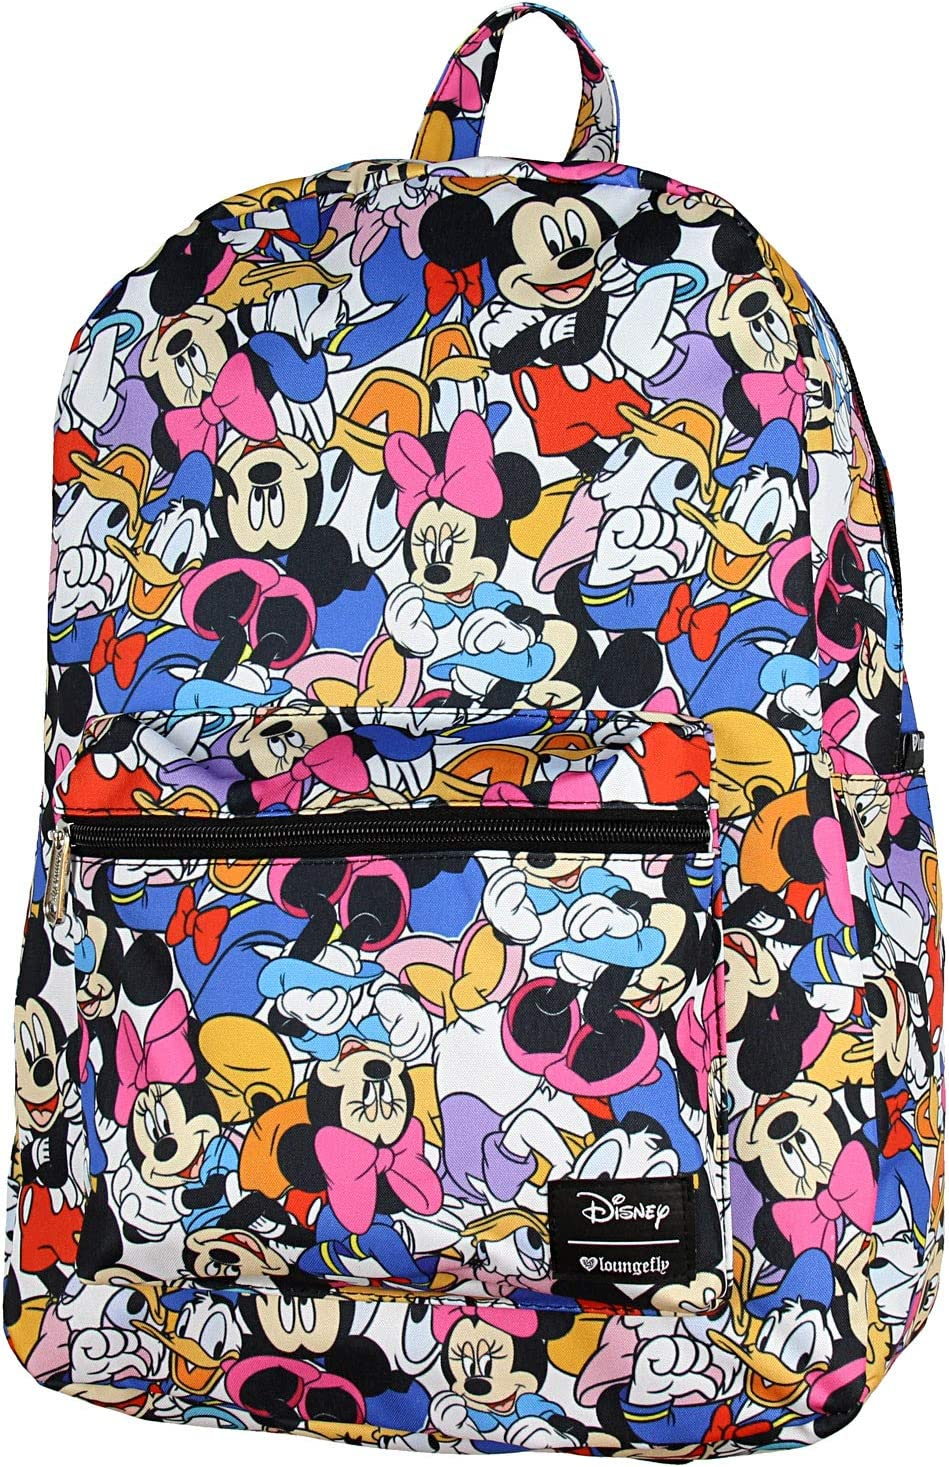 Disney Mickey Minnie Mouse Donald Daisy Duck Backpack Friends Print